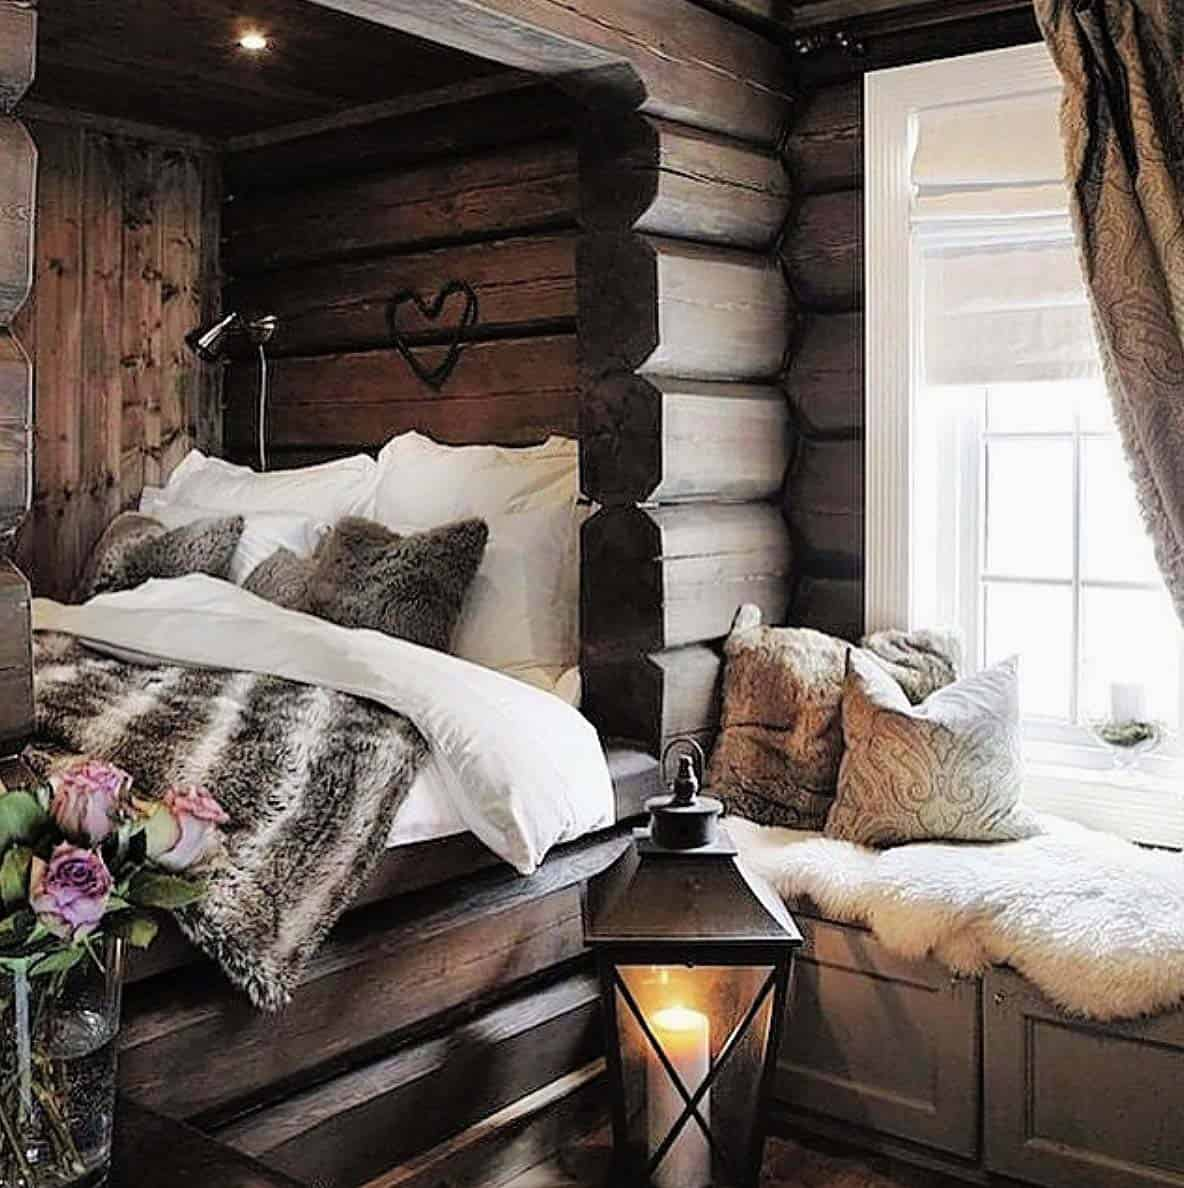 33 Ultra-cozy bedroom decorating ideas for winter warmth on Room Decor Ideas id=65522